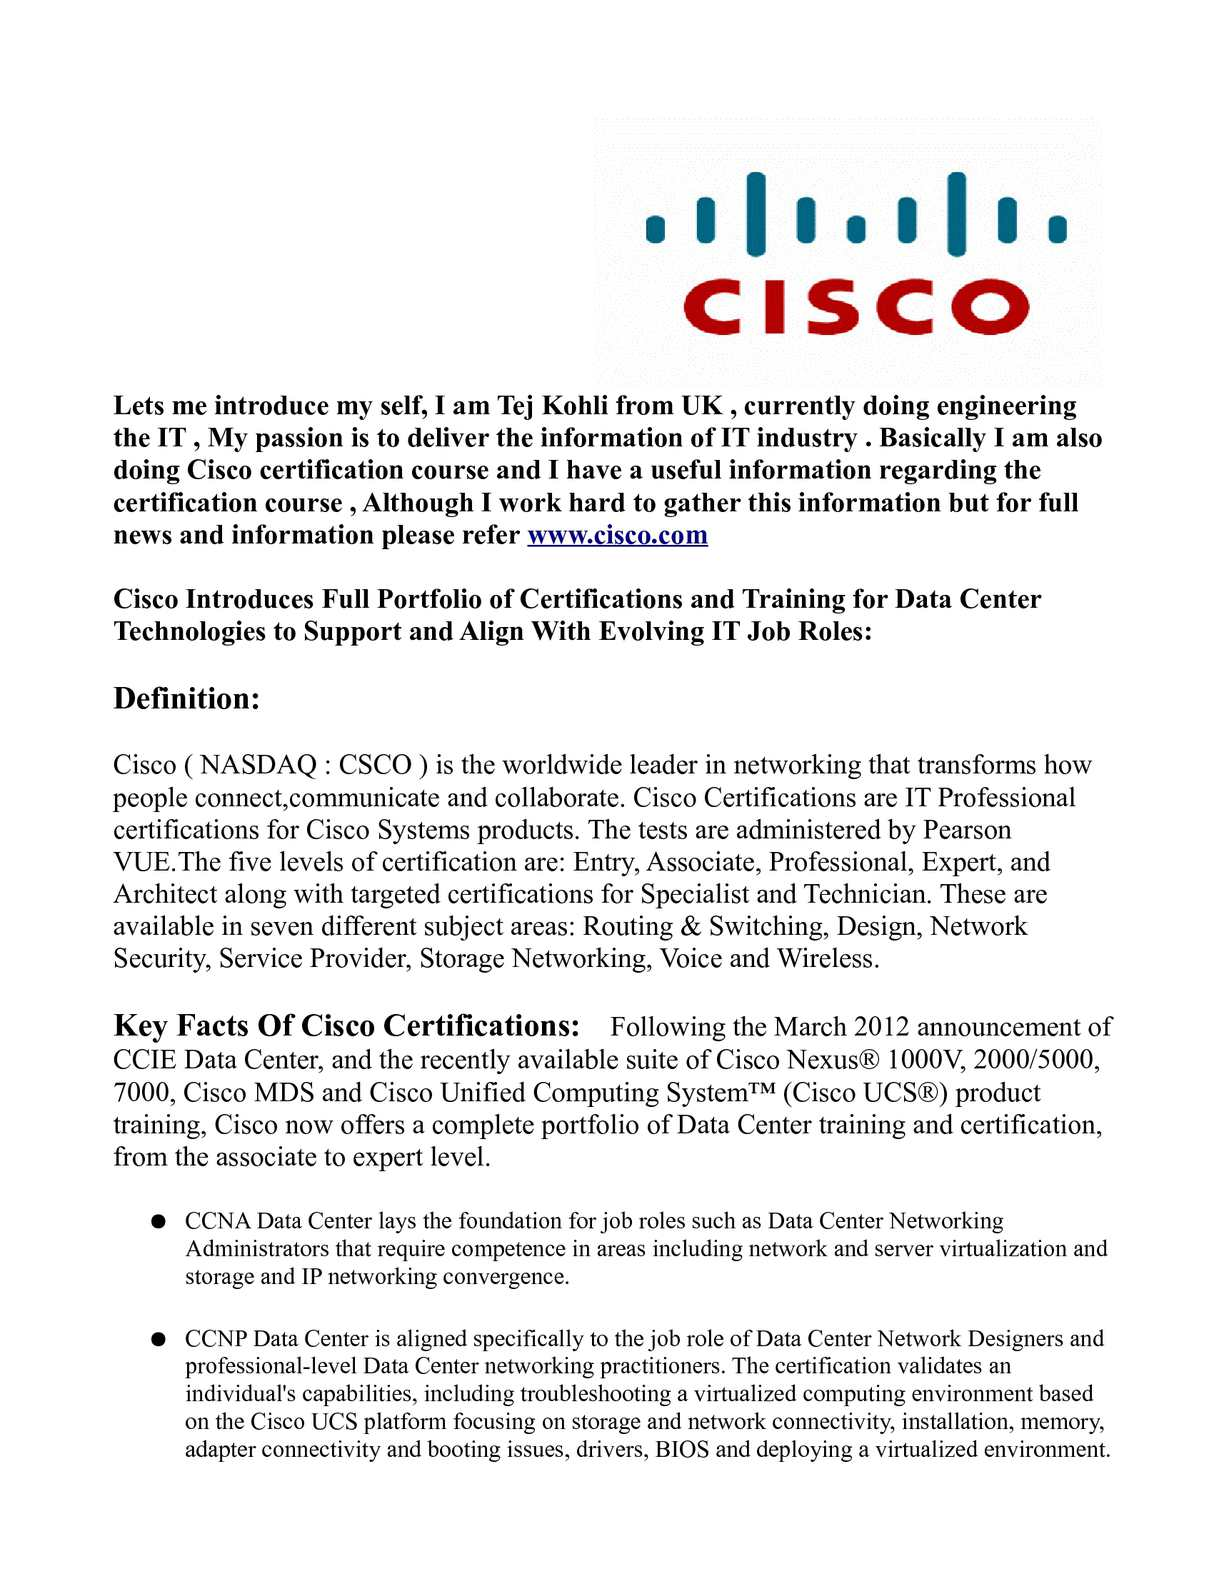 Calamo Cisco Certifications Training News By Tej Kohli Cisco